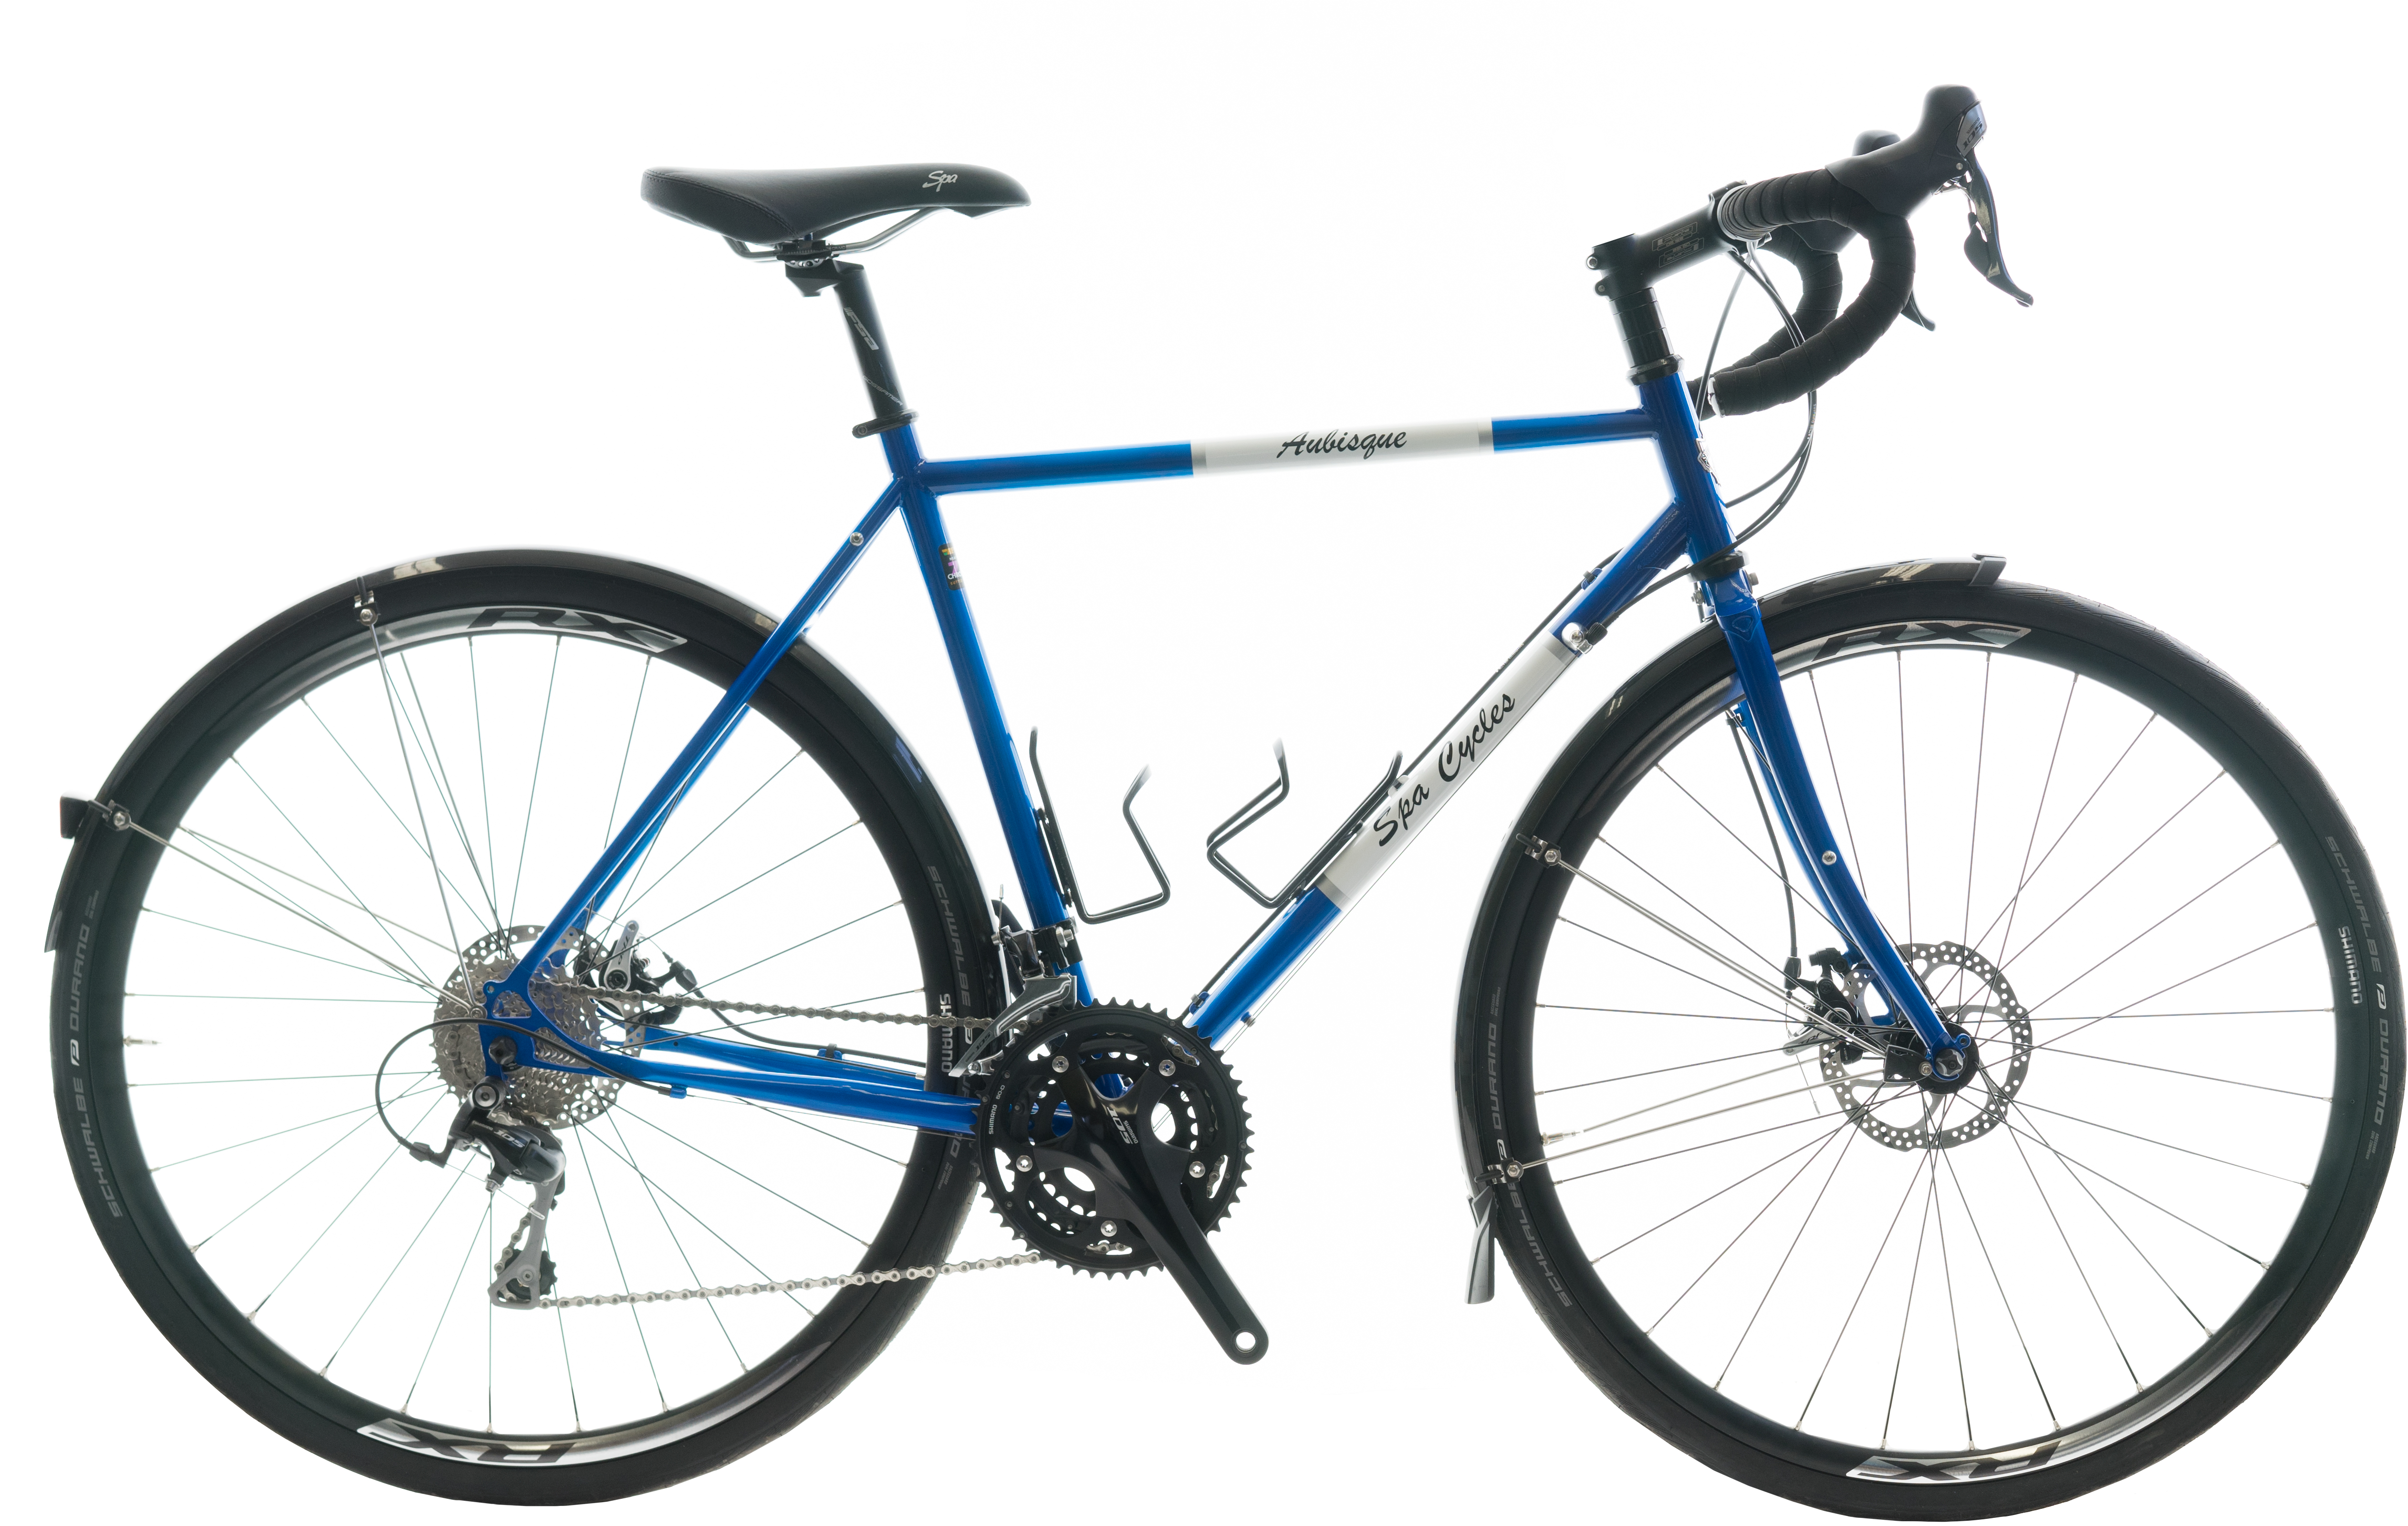 Spa Cycles, Harrogate - The touring cyclists specialist